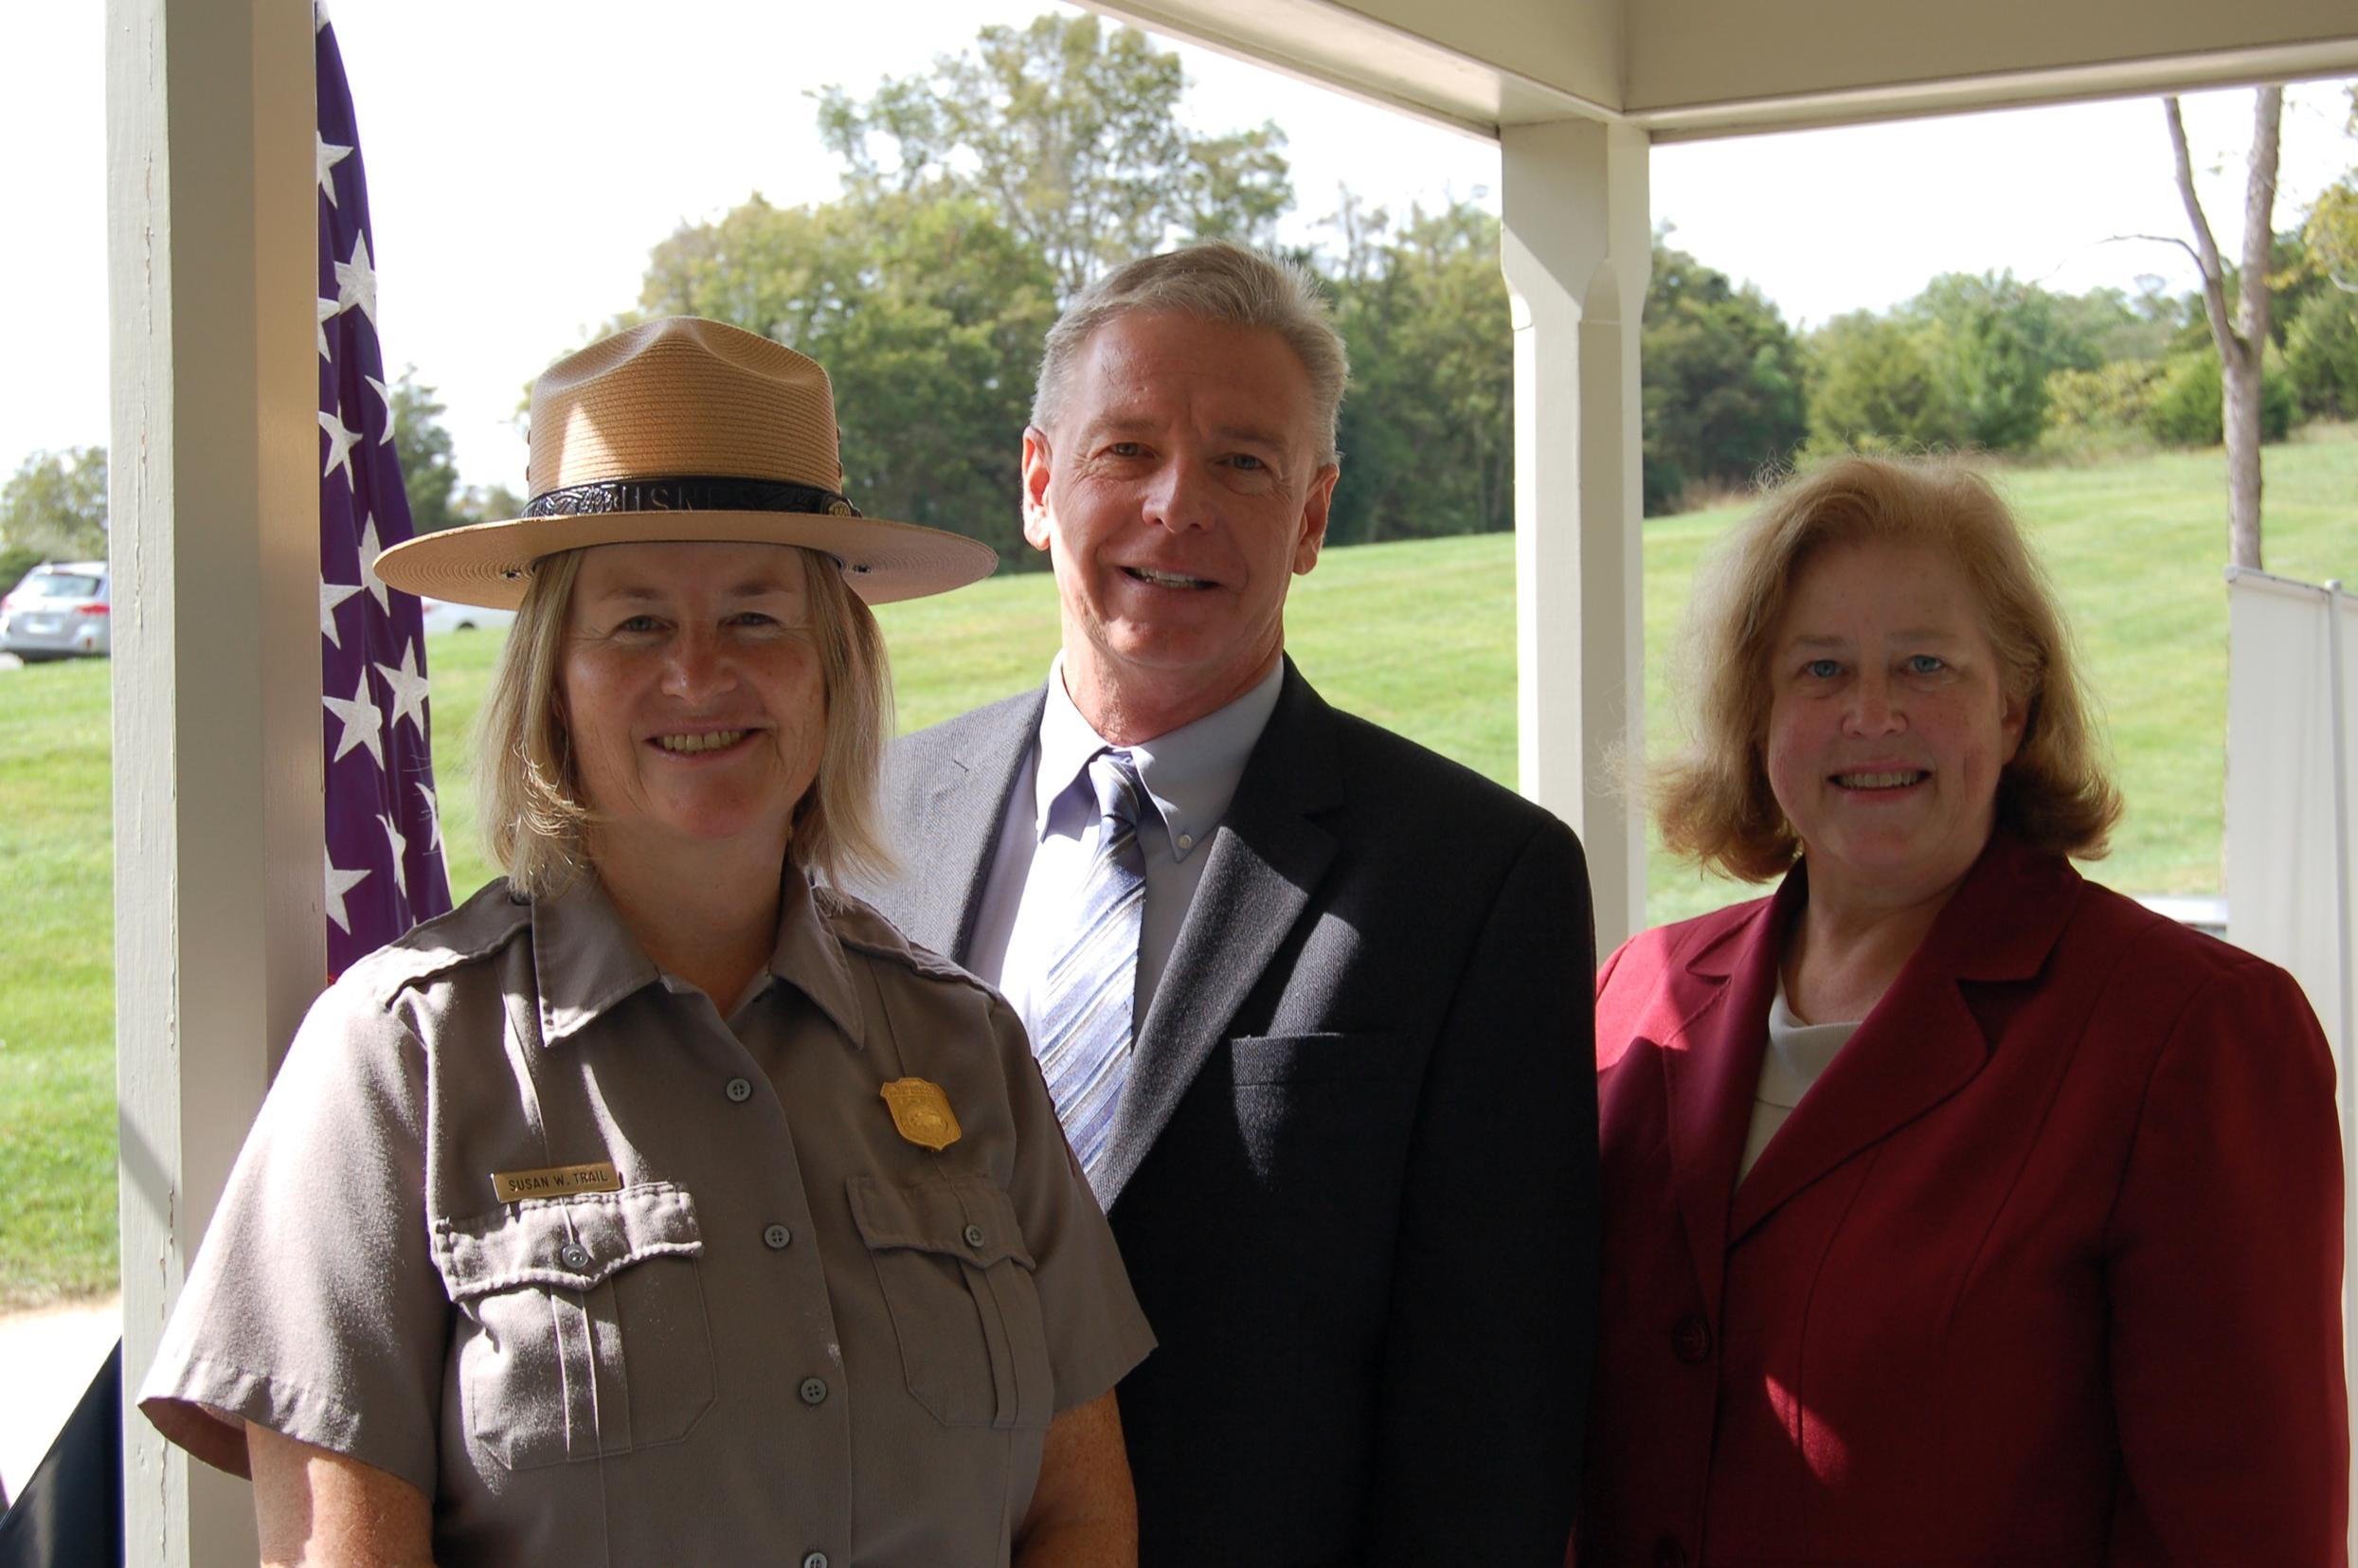 Antietam Superintendent Susan Trail, Visit Hagerstown President Dan Spedden, and Heart of the Civil War Director Liz Shatto